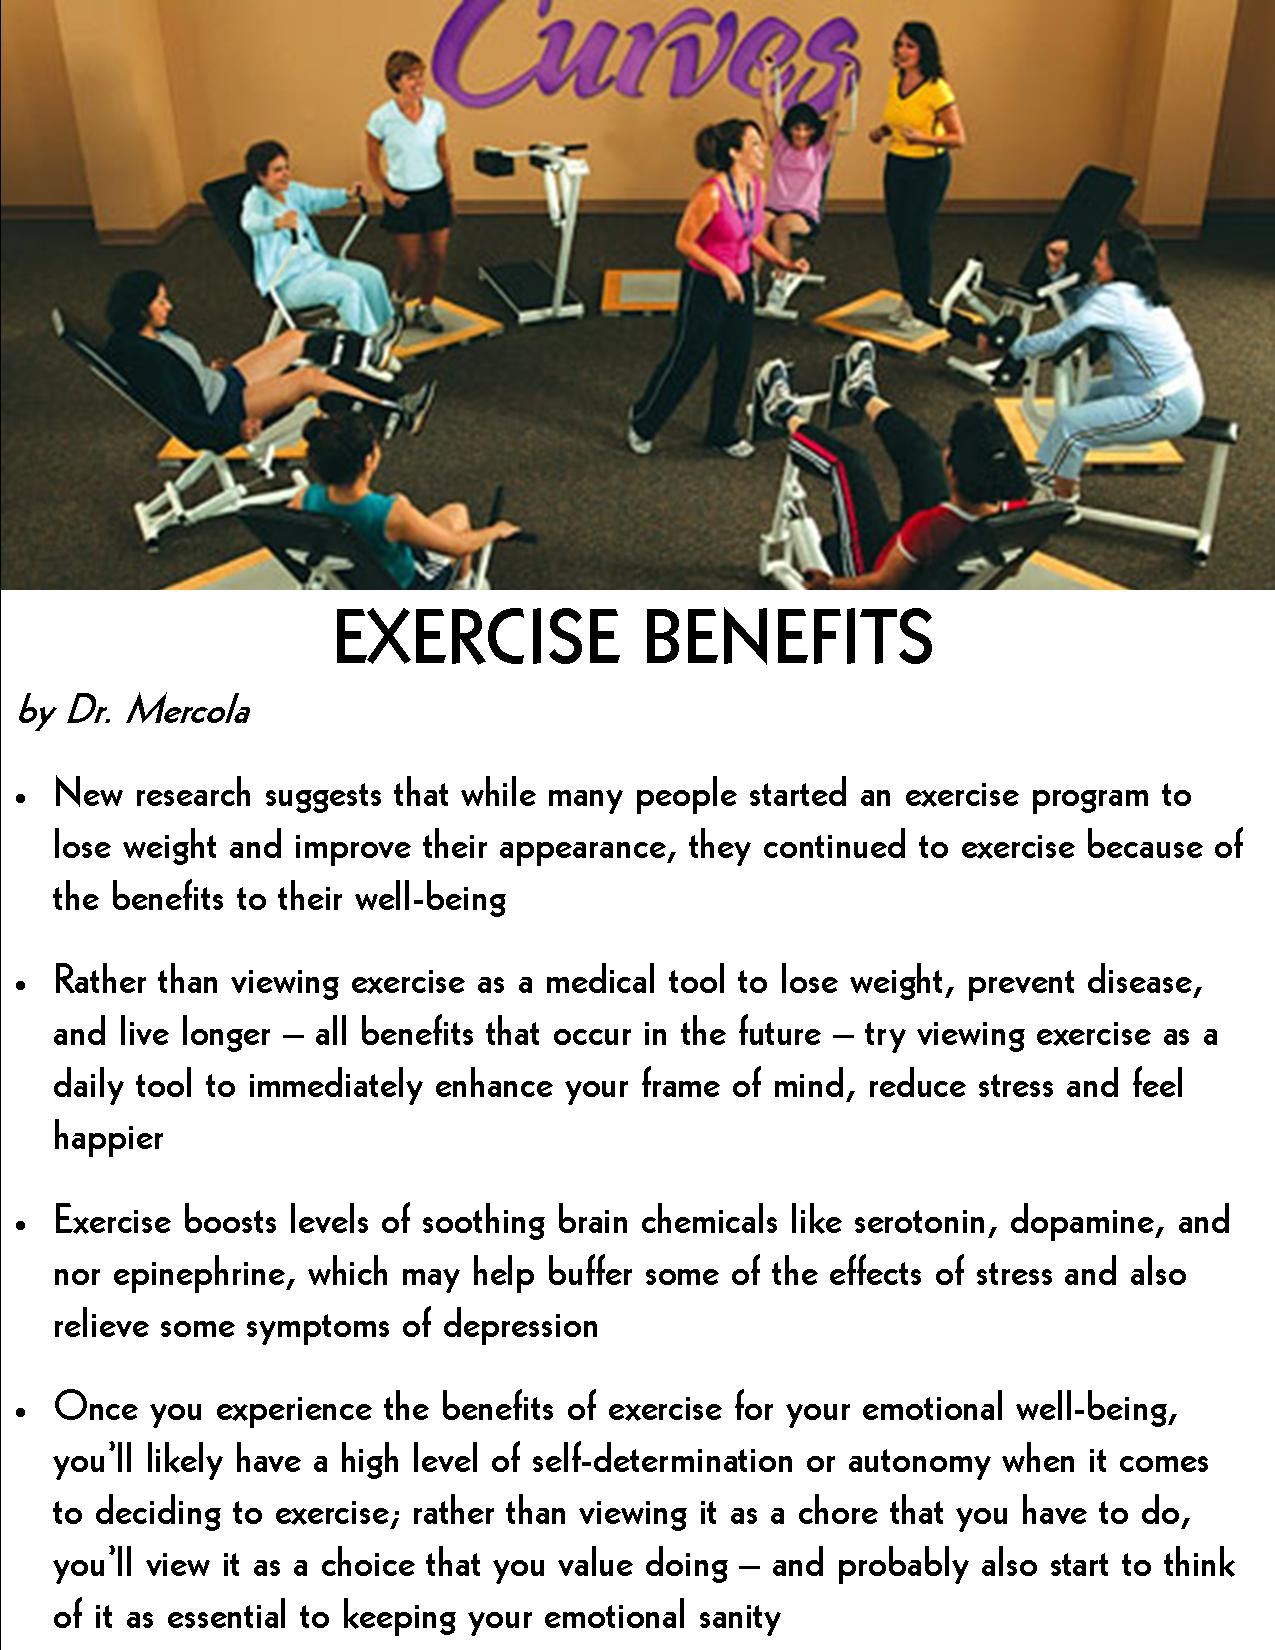 Exercise benefits - all are 100% true. Upon developing an exercise routine  to lose weight and look better, I'm now maintaining it due to its positive  ...